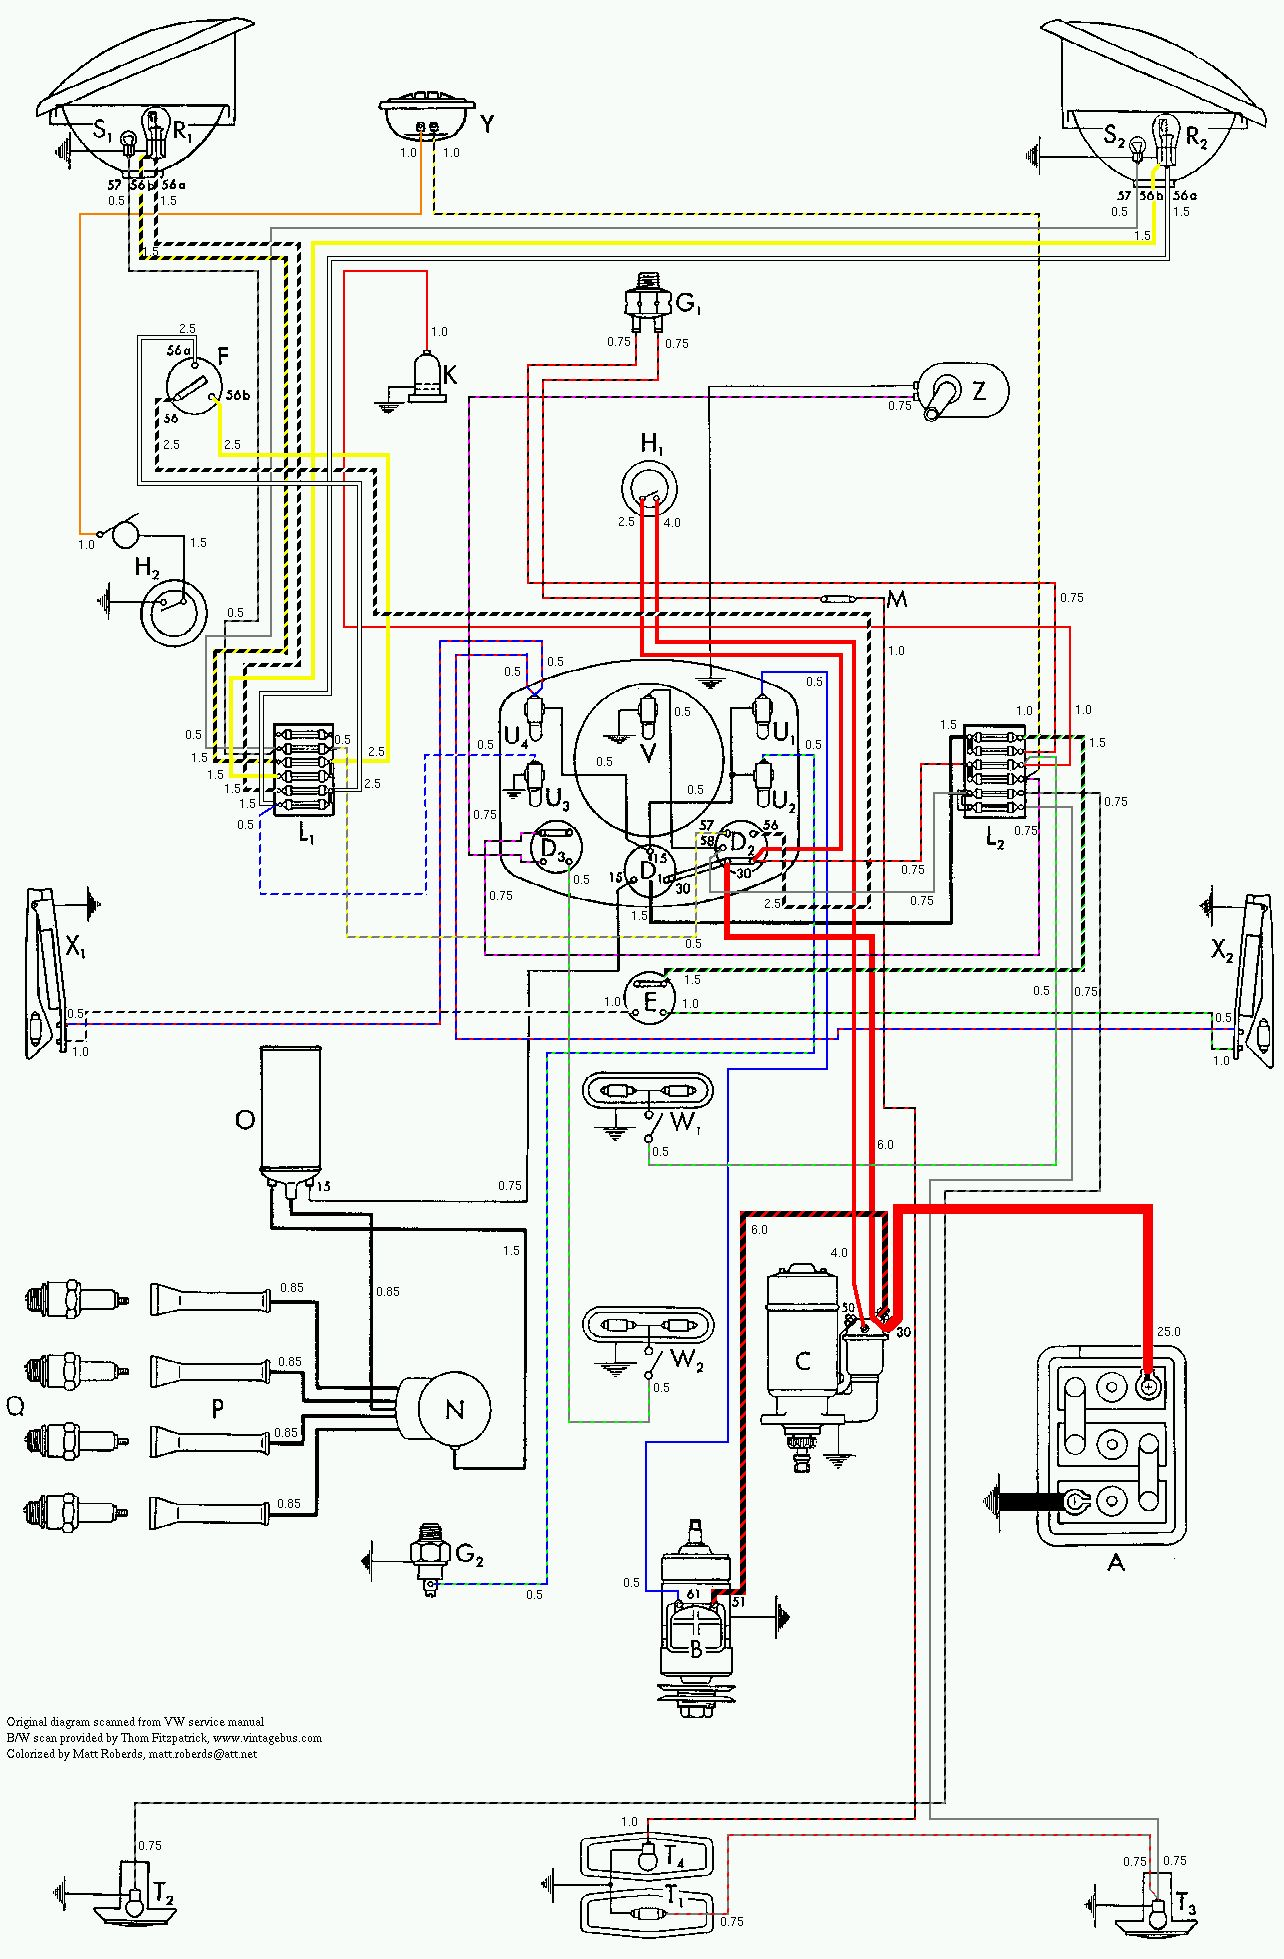 82 Chevy Alternator Wiring Diagram Vw Bullimania It